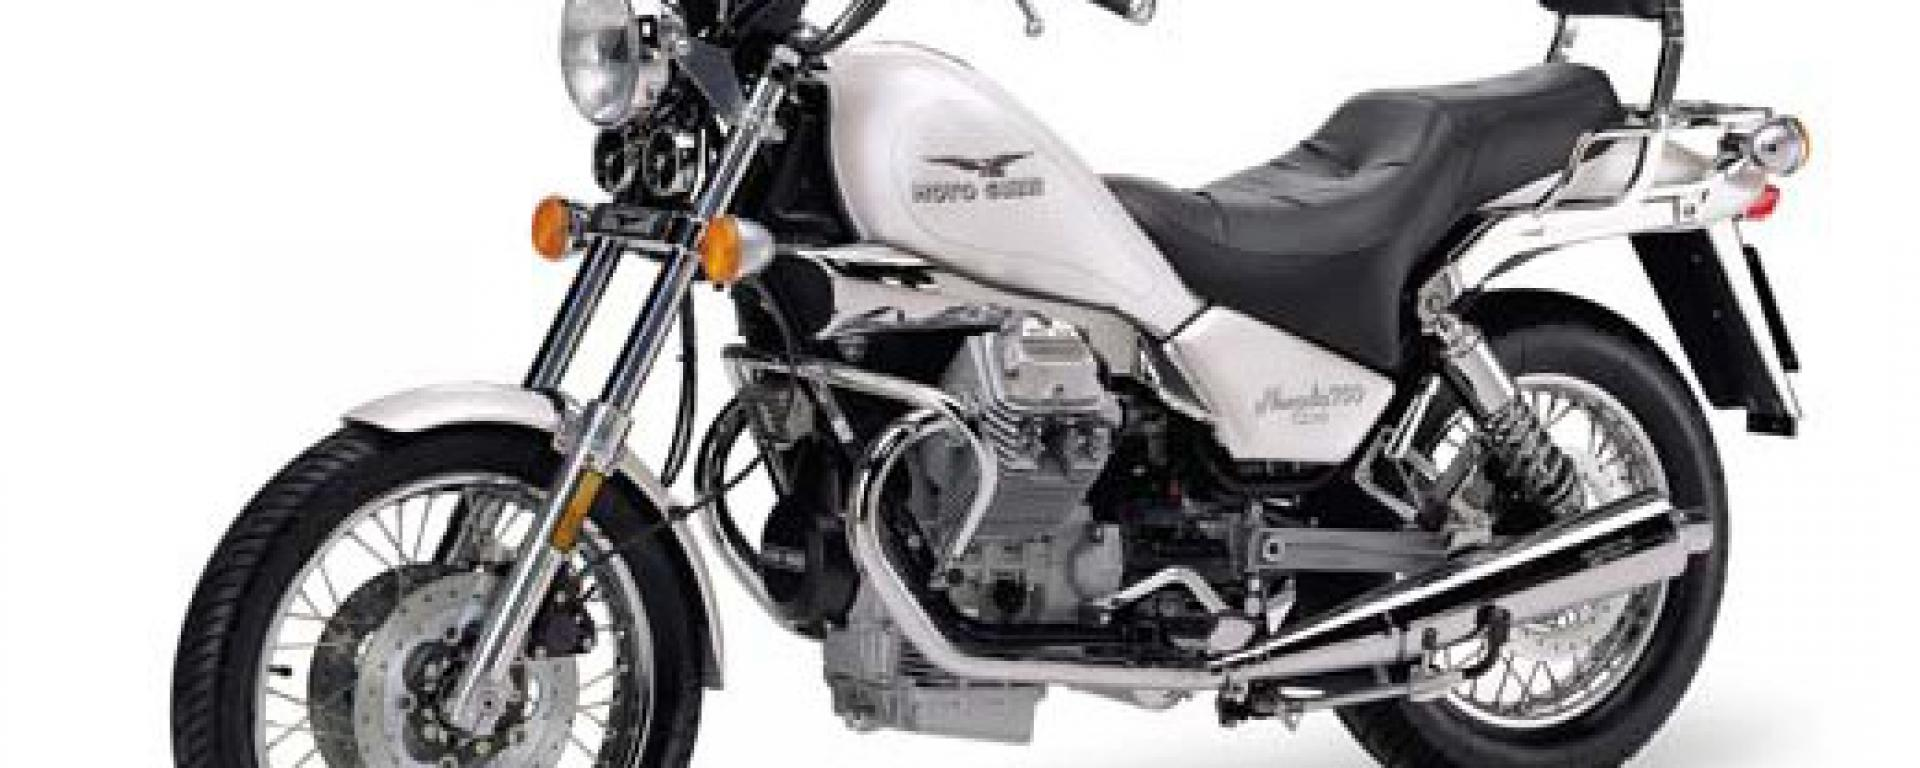 2001 moto guzzi nevada 750 pics specs and information. Black Bedroom Furniture Sets. Home Design Ideas